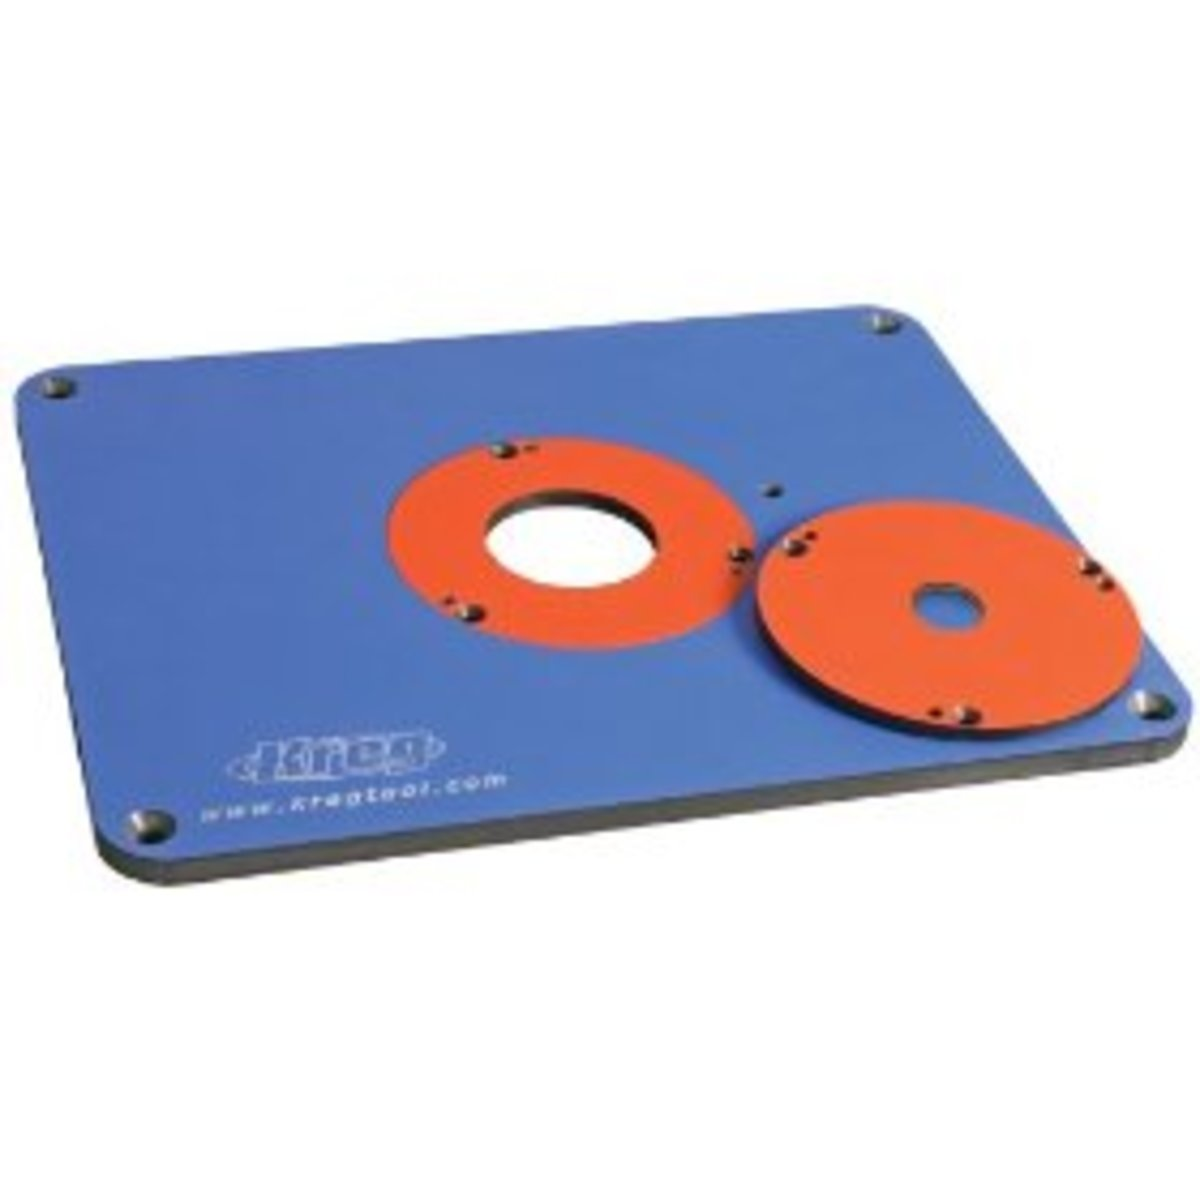 Router table insert plate sizes hubpages kreg router table insert greentooth Images